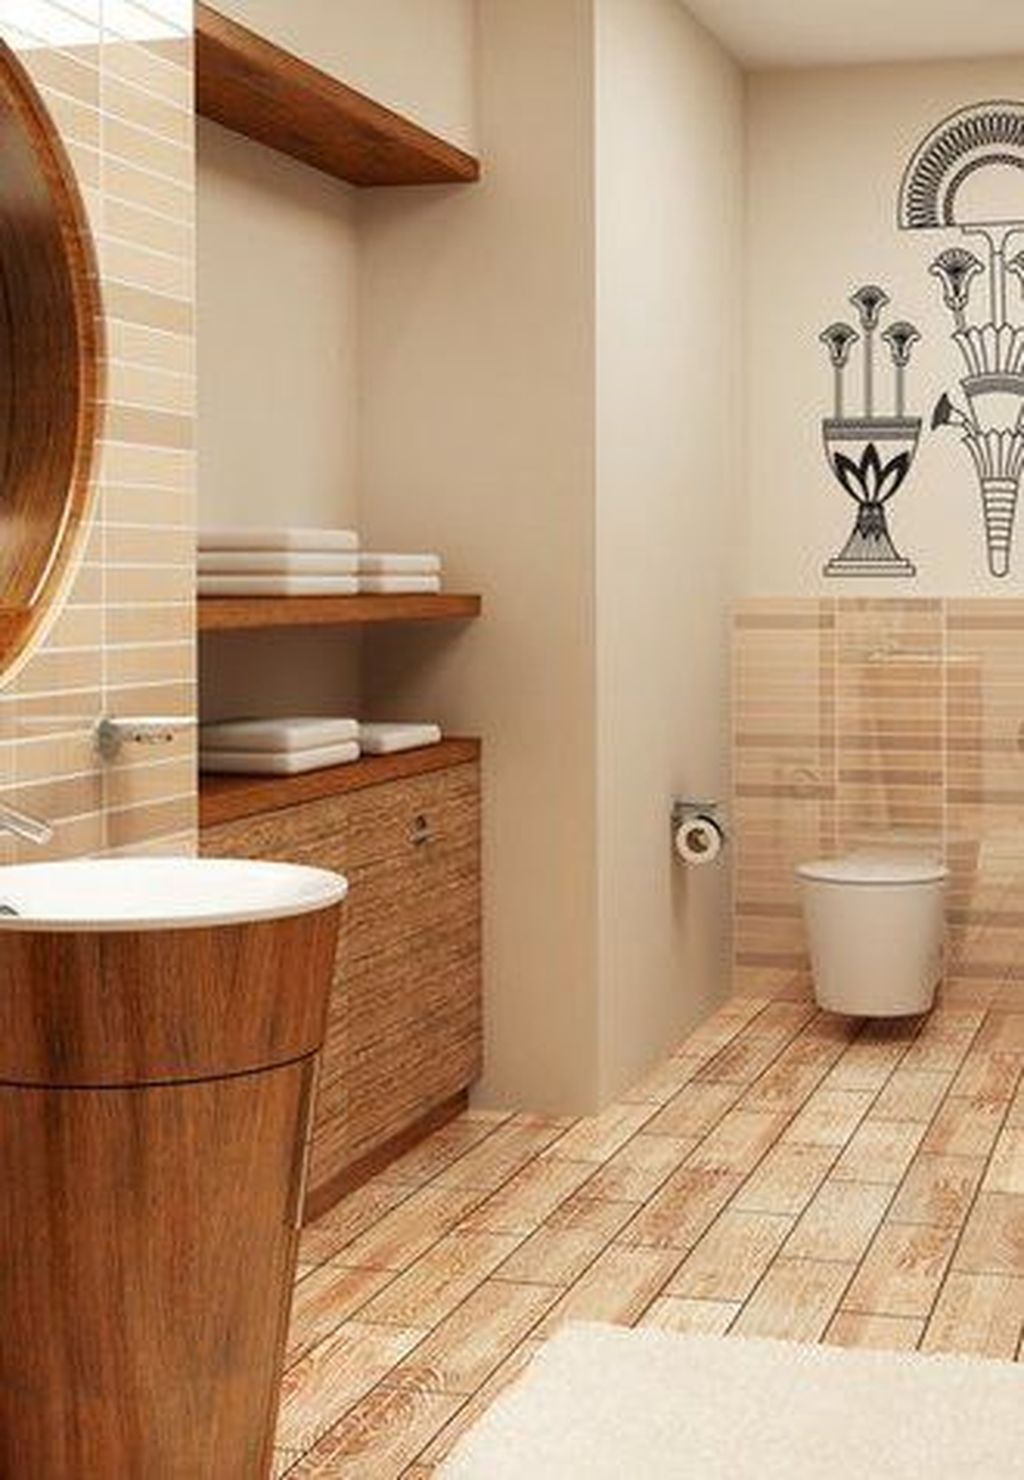 Marvelous Wooden Shower Floor Tiles Designs Ideas For Bathroom Remodel 33